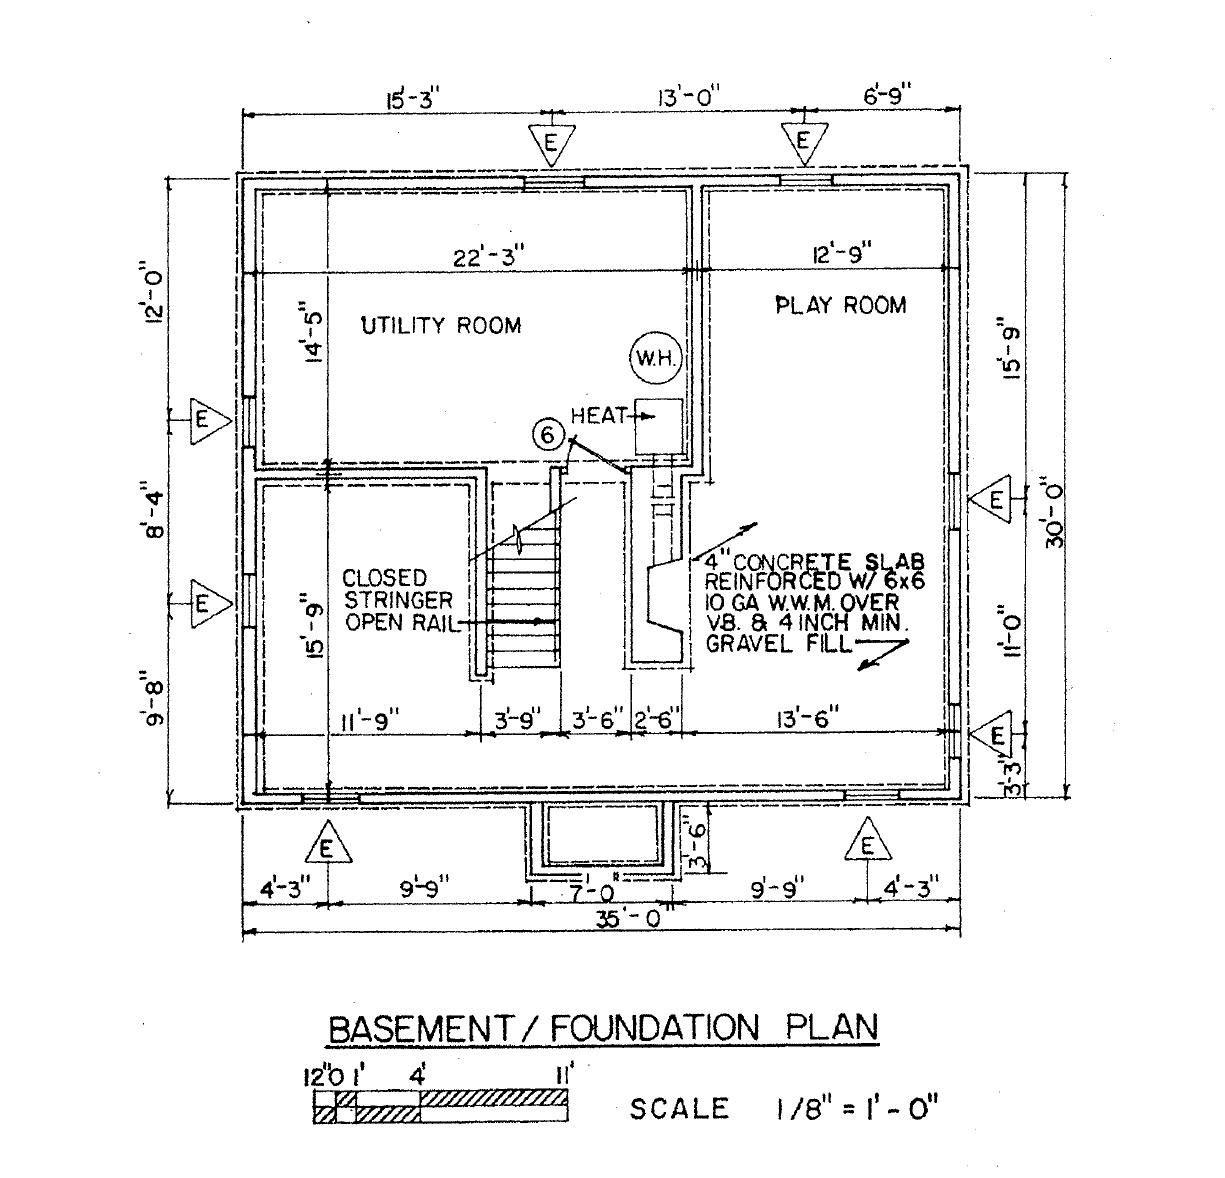 Free saltbox house plans saltbox house floor plans for Foundation plan of a 2 storey house